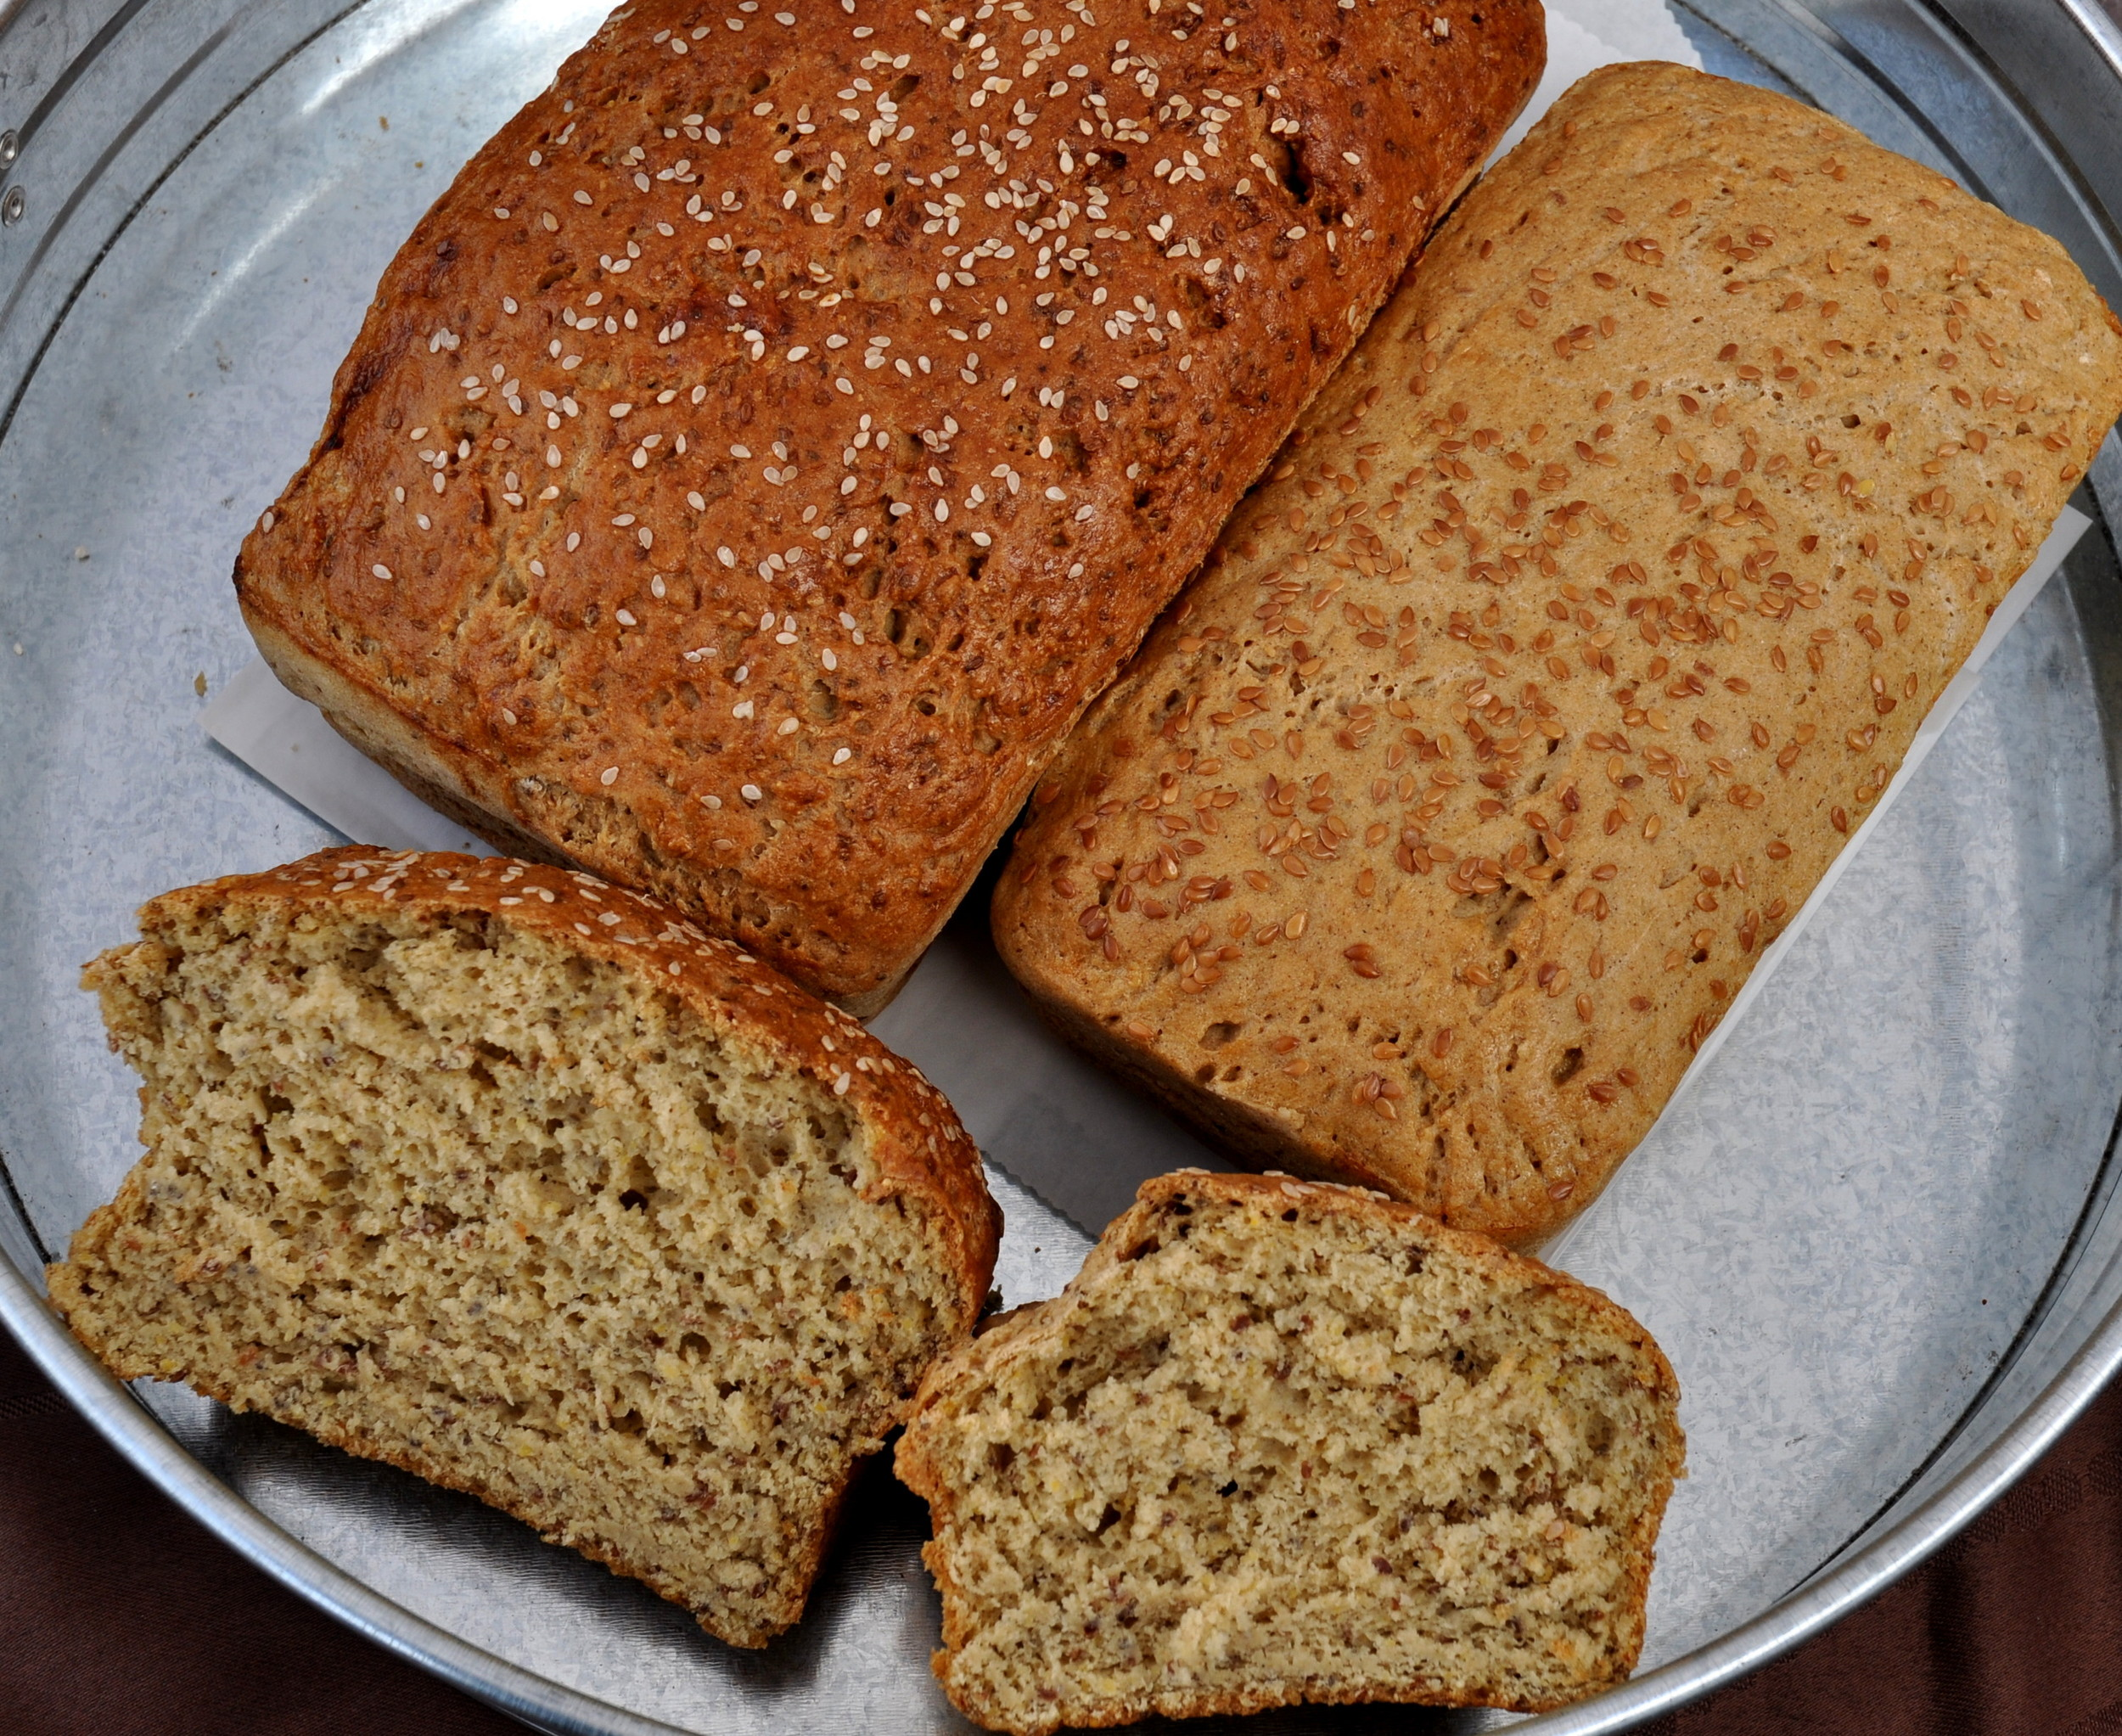 Sesame loaf (left) and whole grain sandwich bread from d:floured gluten-free bakery. Photo copyright 2013 by Zachary D. Lyons.